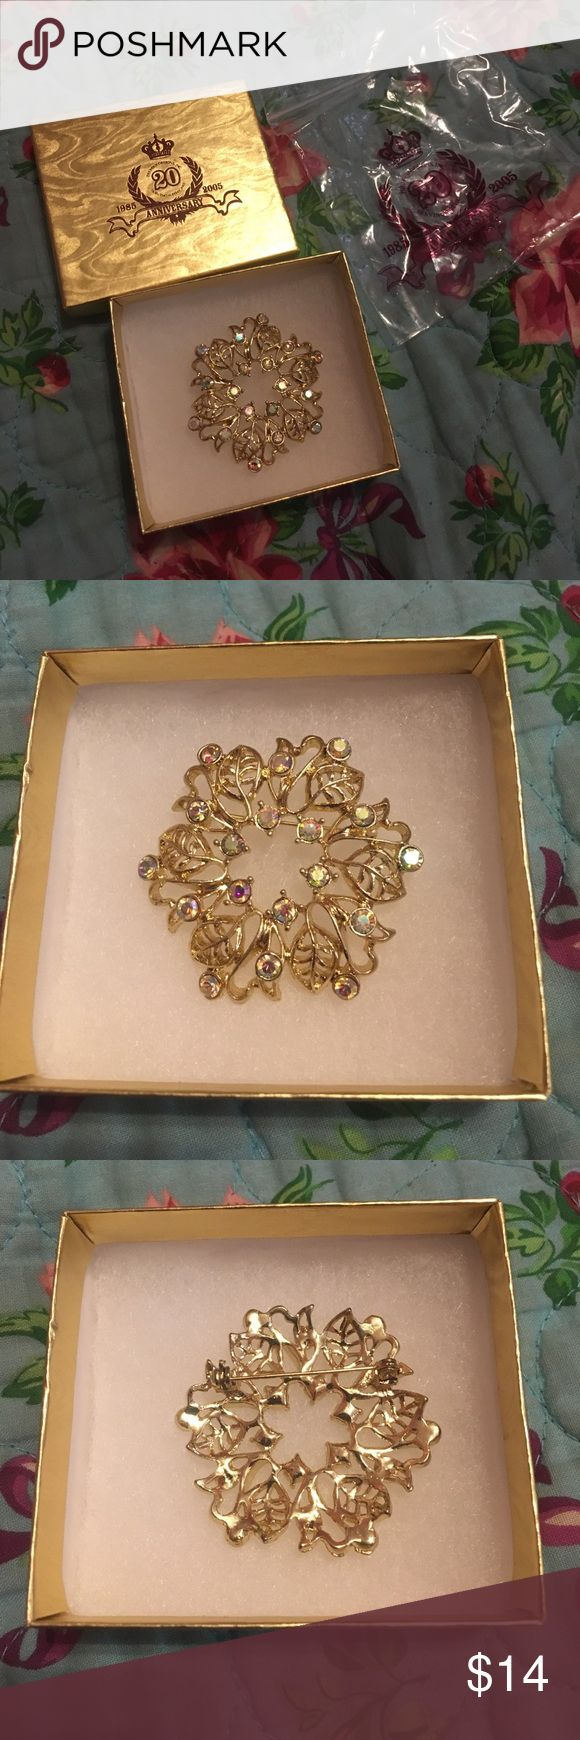 """Premier Designs INC. """"Points Of Light"""" Pin/Brooch Never worn still has original packaging. For their 20th anniversary. No missing jewels. Premier Designs Jewelry Brooches"""